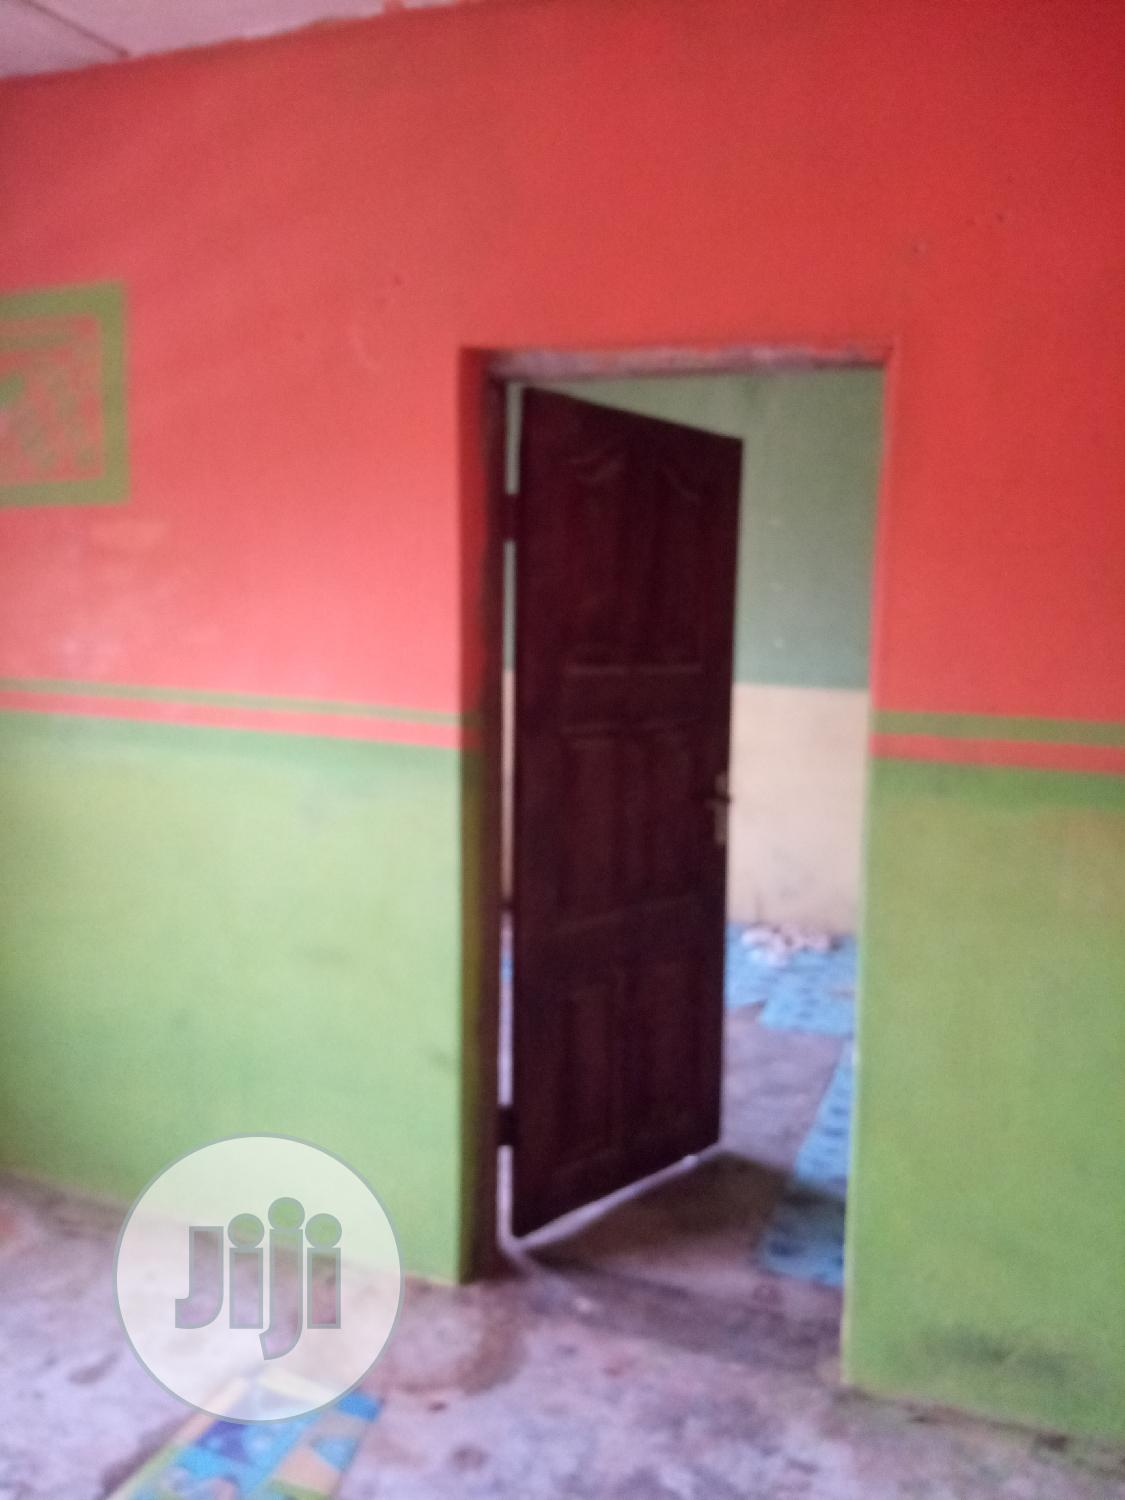 Ordinary Room And Parlor Oloko Junction Apata Ibadan | Houses & Apartments For Rent for sale in Ido, Oyo State, Nigeria